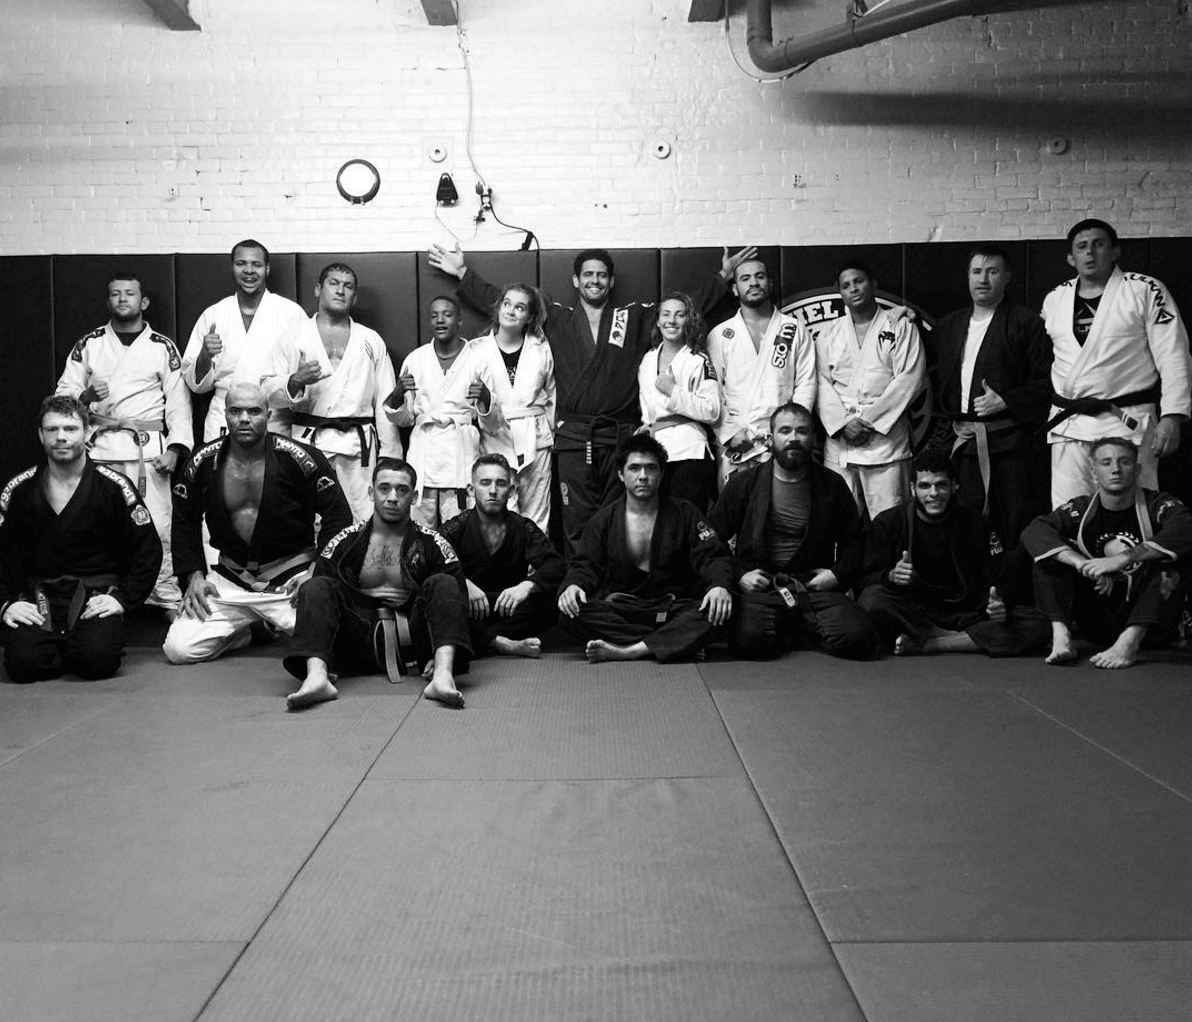 Fitness Health Renzo Gracie Fight Academy Students